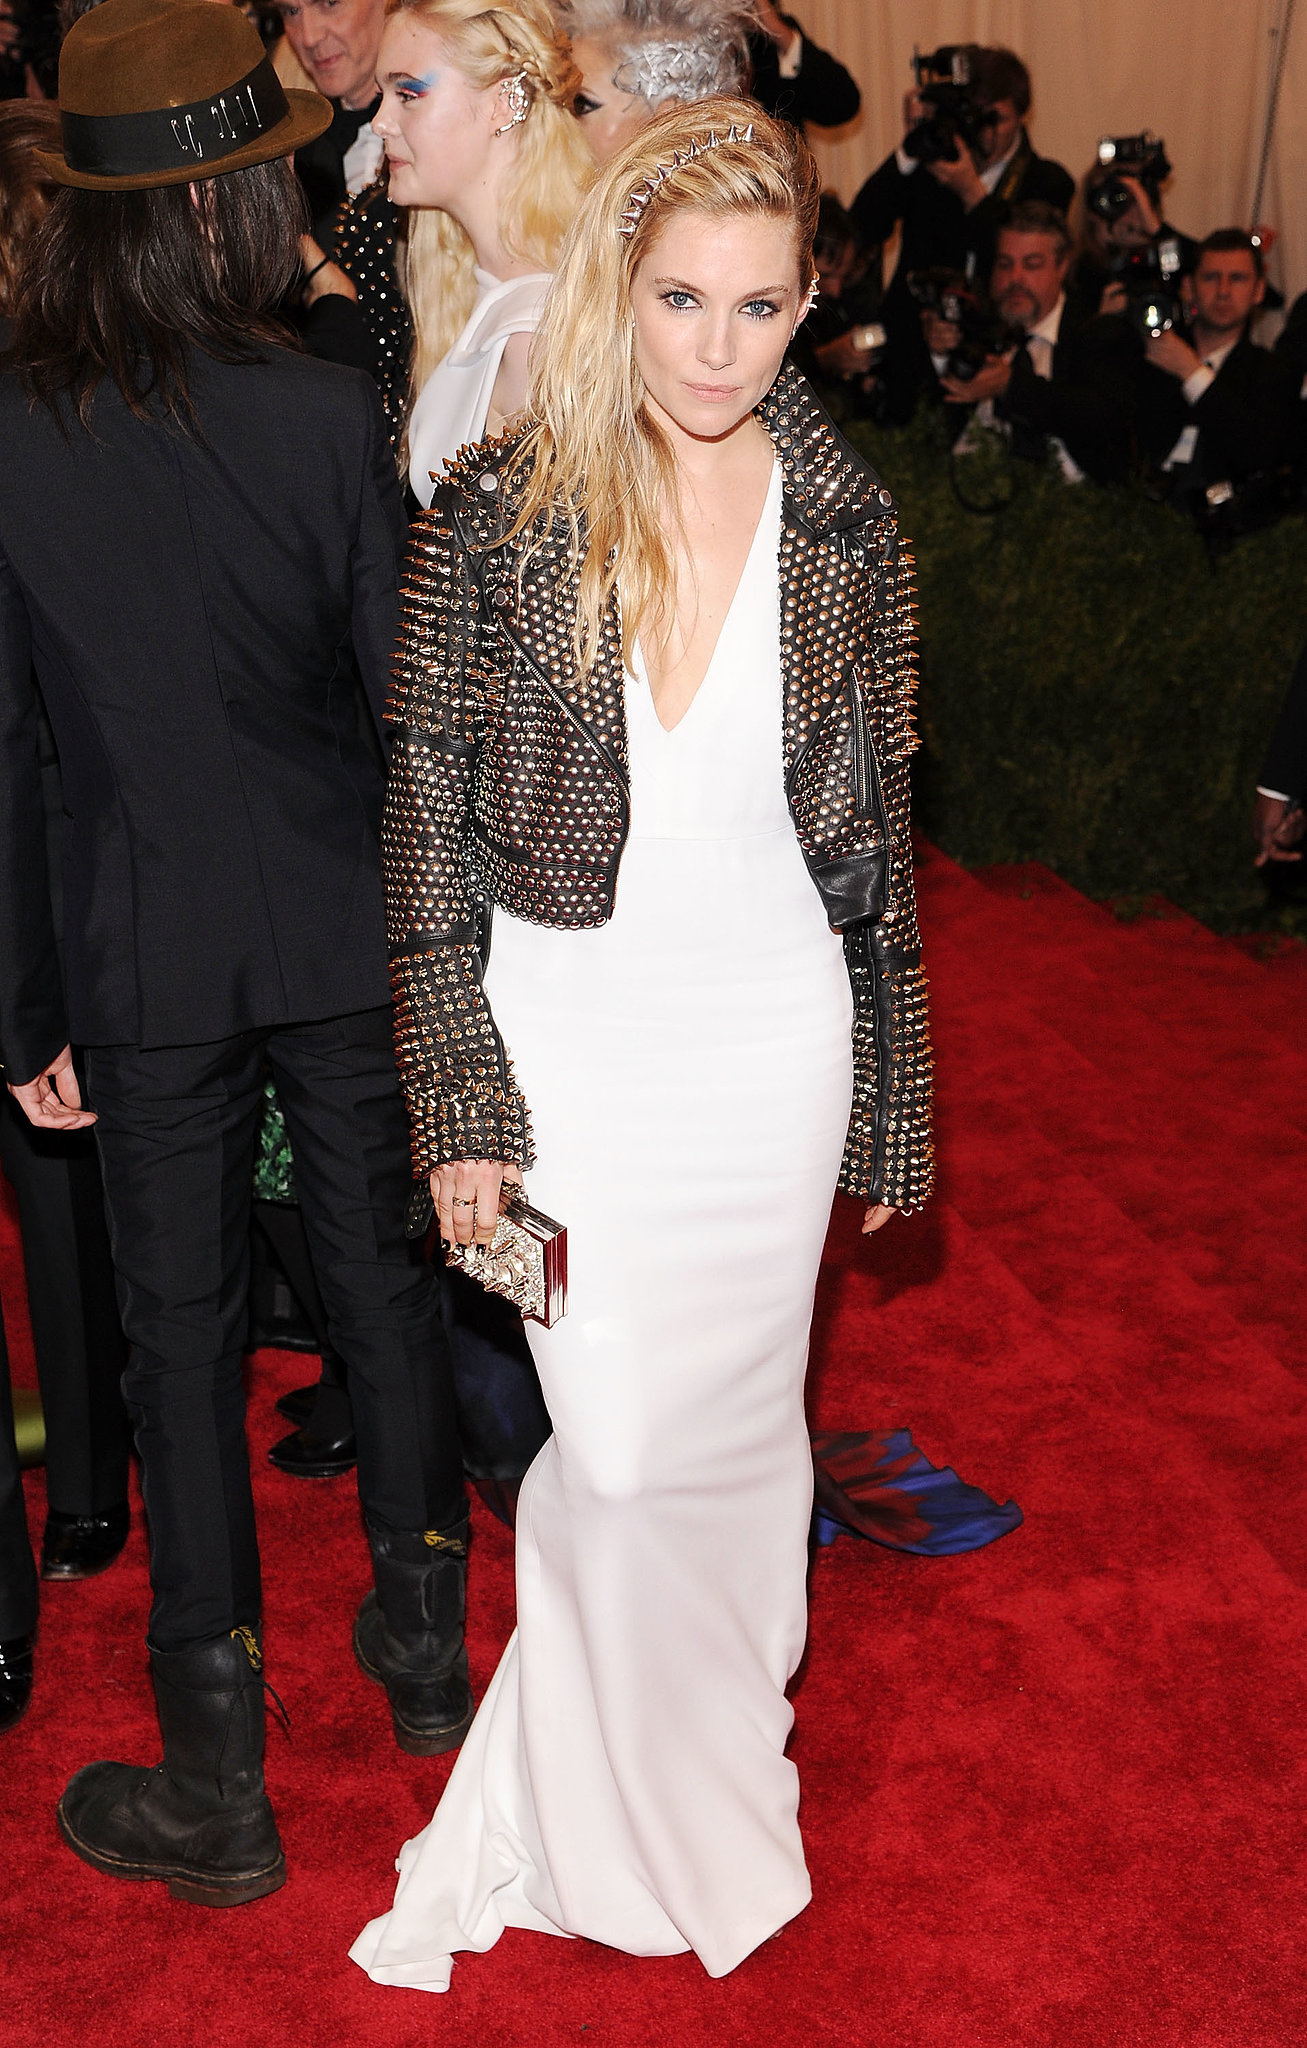 Let's all take a moment to appreciate the punk-princess realness Sienna gave us at the 2013 Met Gala. [silence] The actress decided to contrast her fluid crepe white gown with a black studded leather biker jacket, both by Burberry, and a matching spike